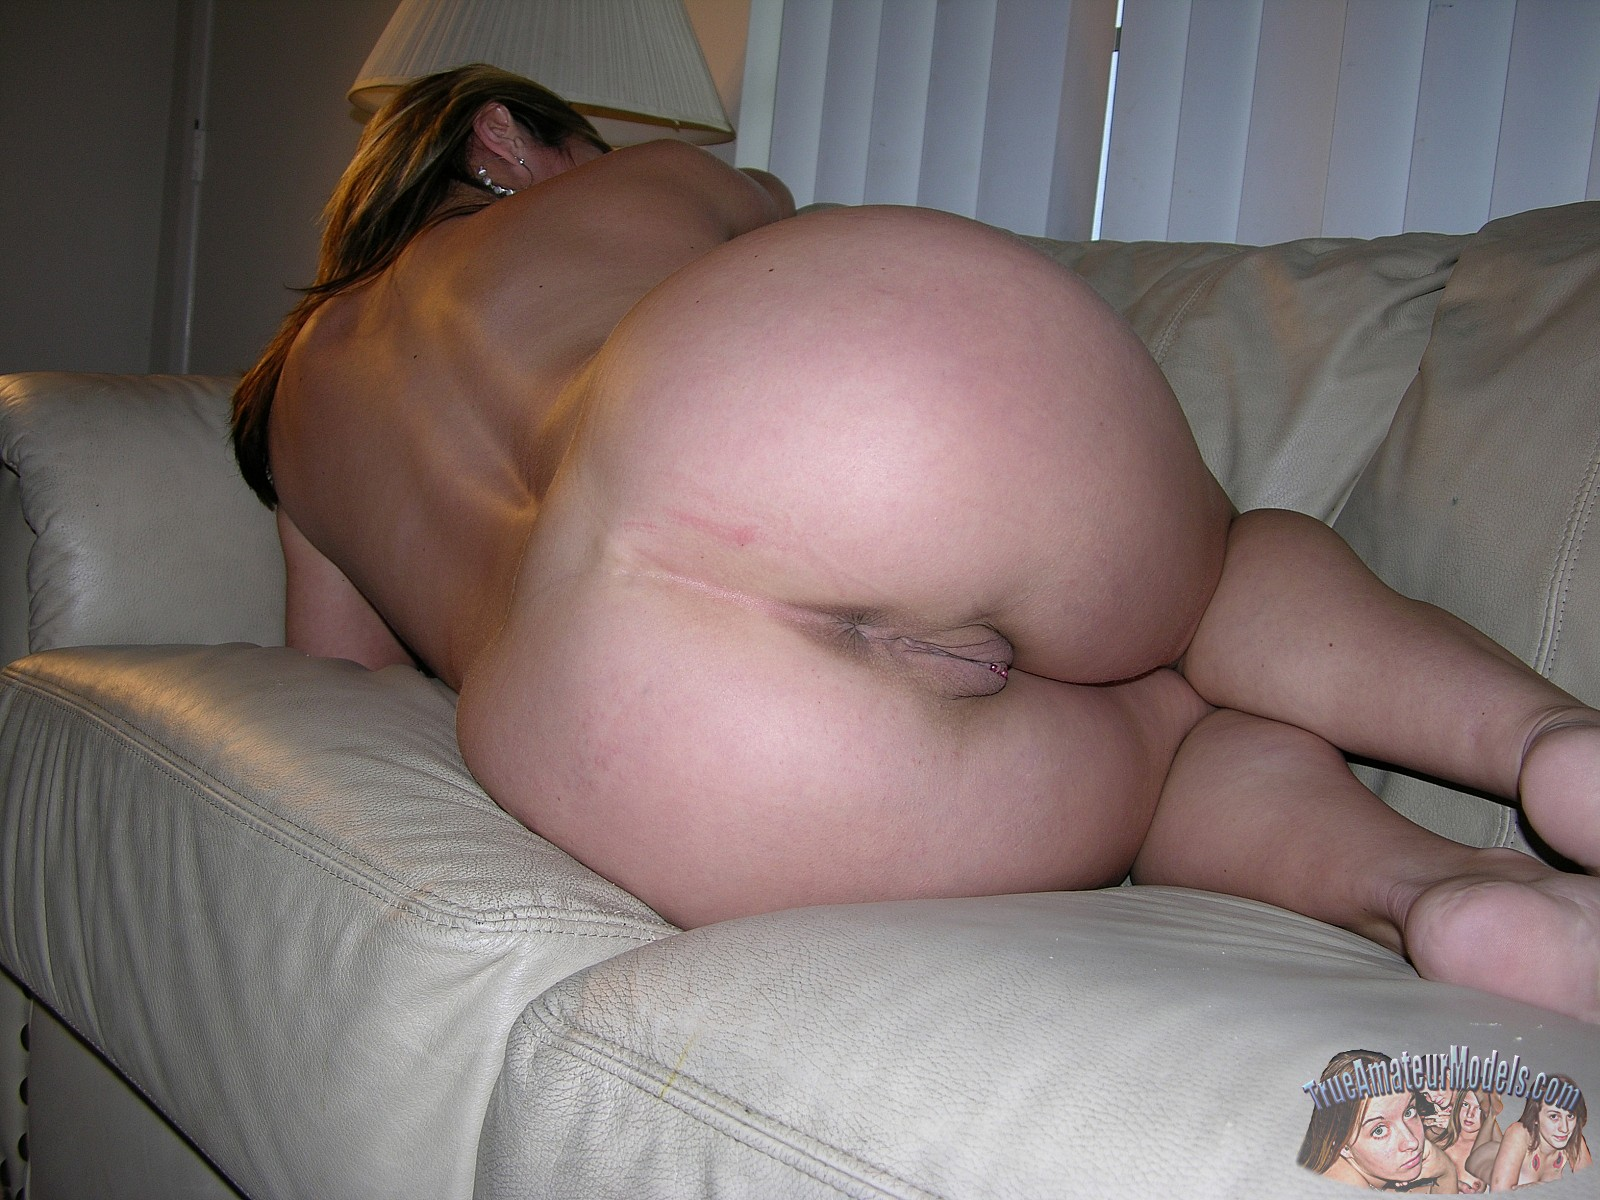 Mature and fat women